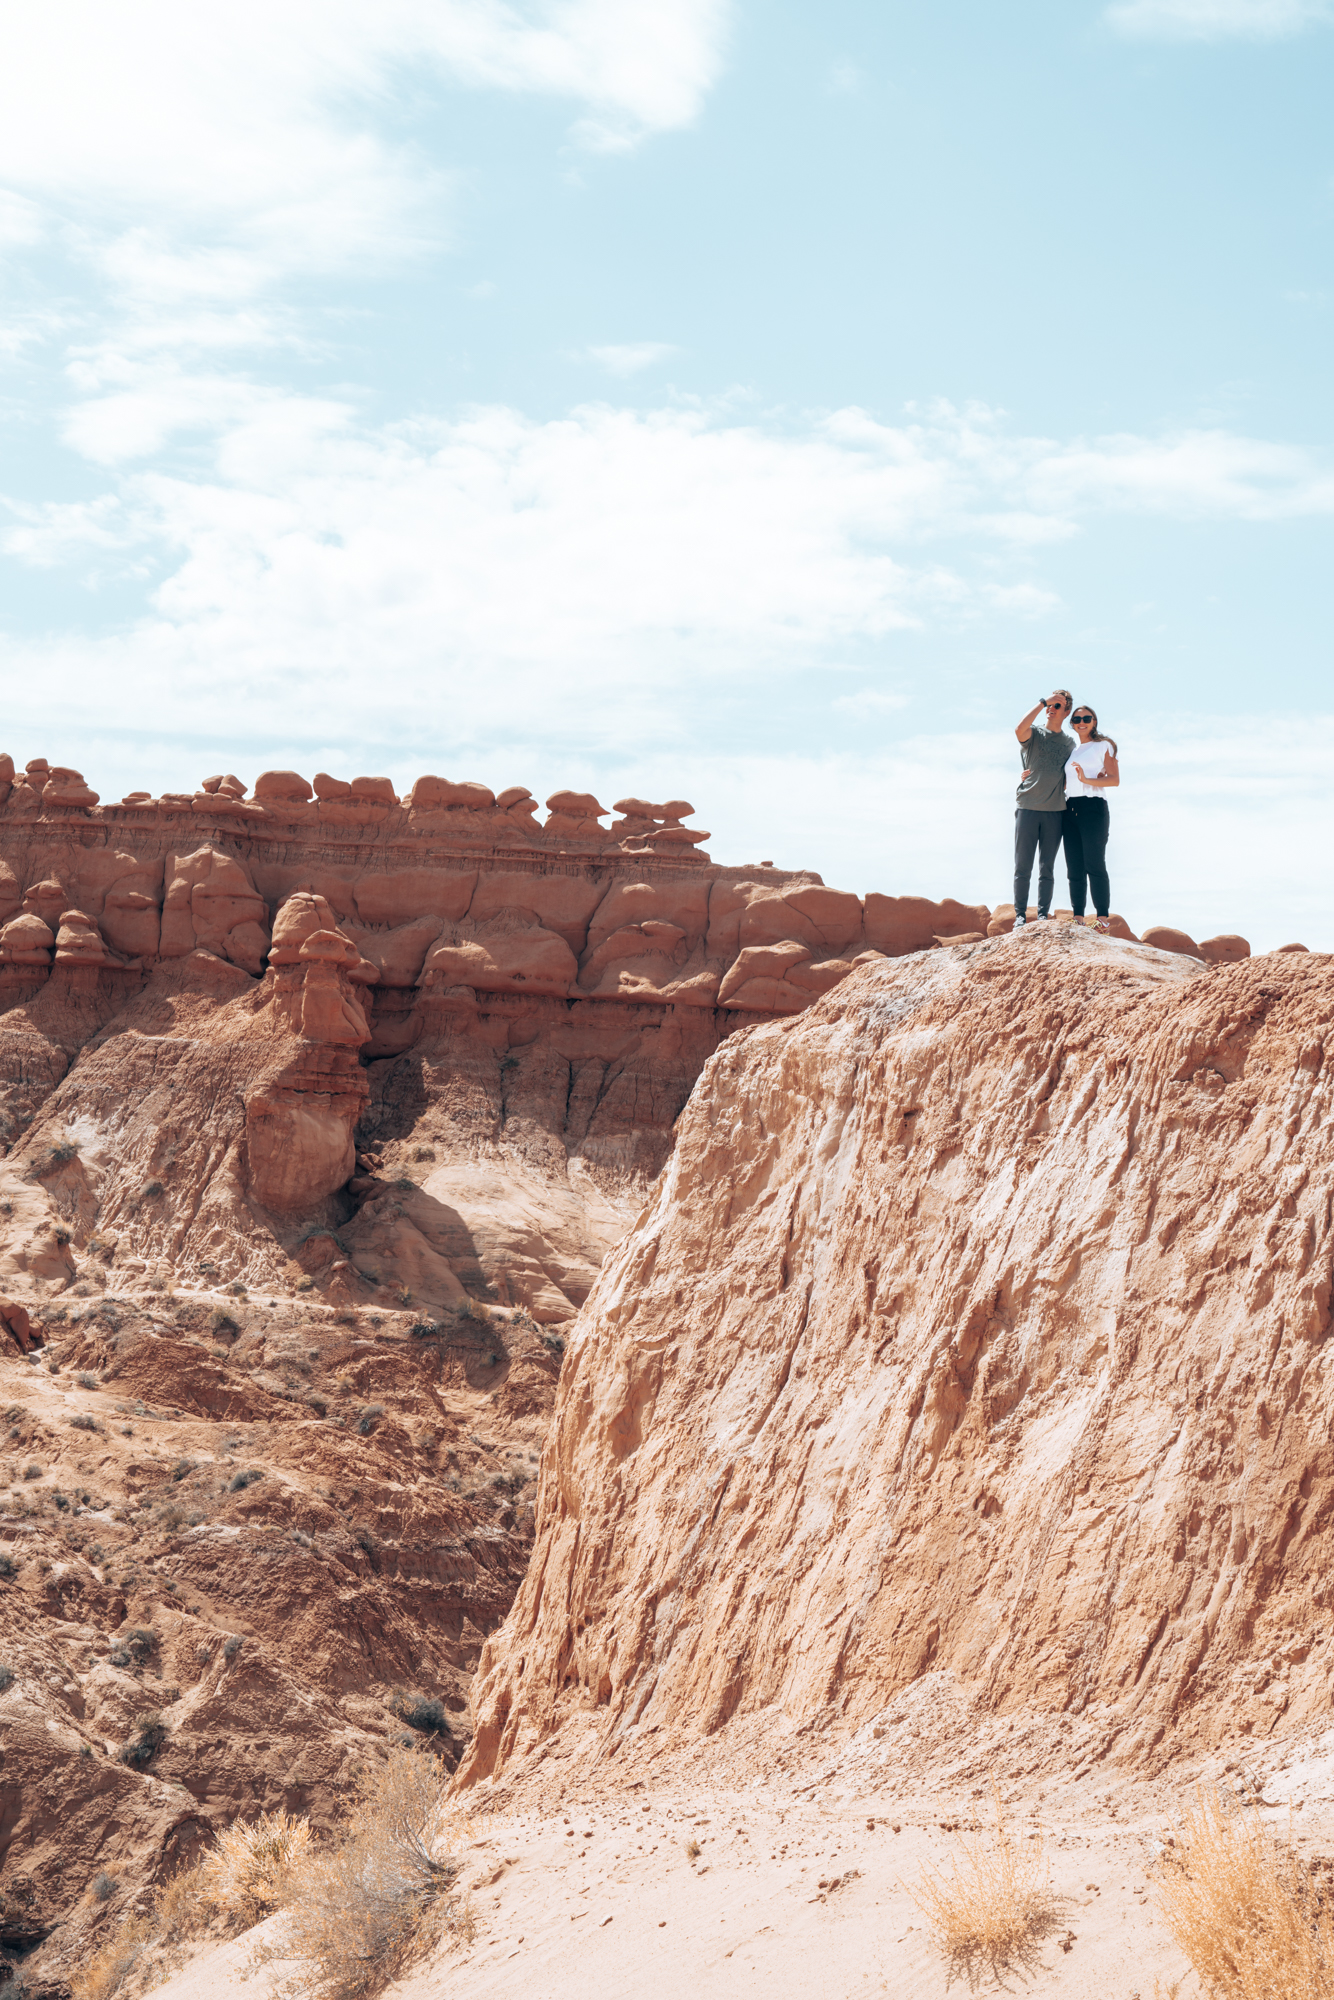 a young couple pose at the edge of cliff with red rock and blue skies behind them.